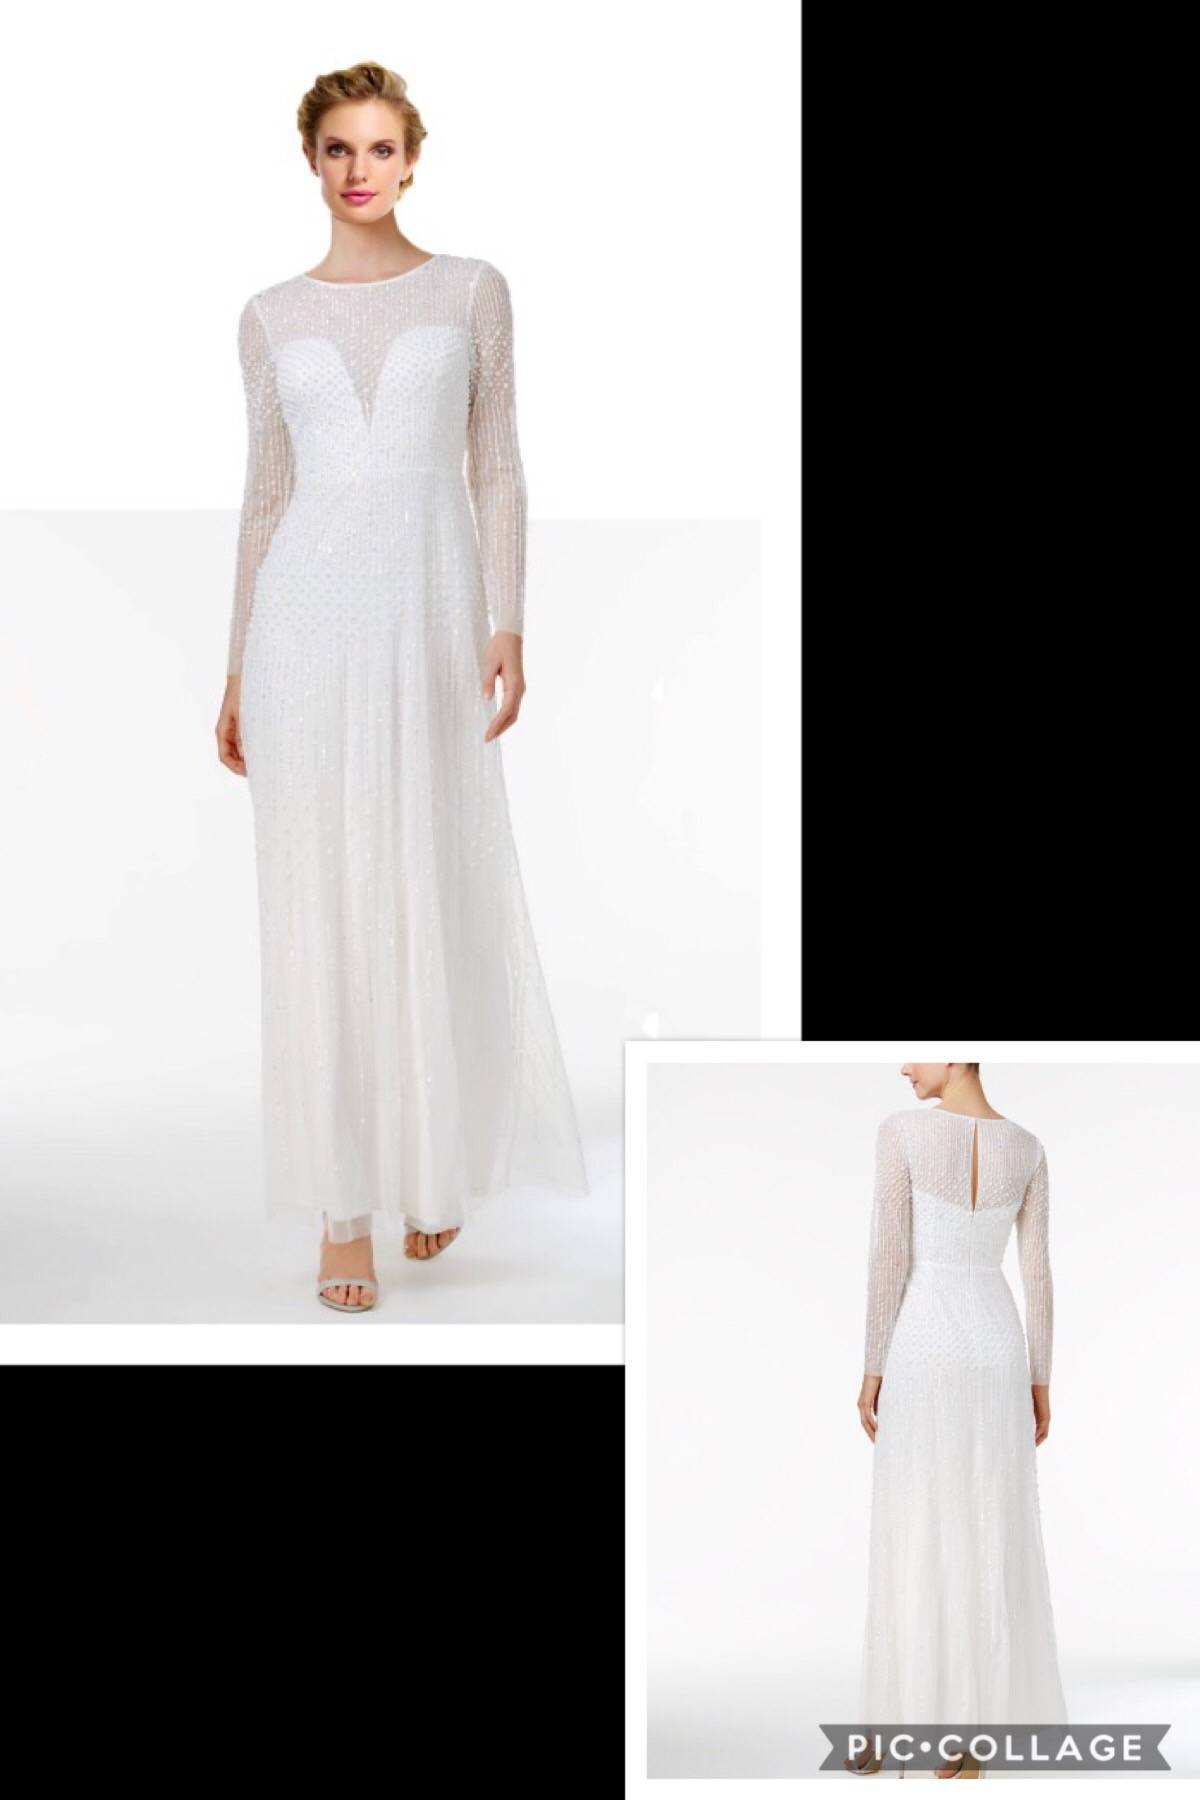 NEW WITH TAGS ADRIANNA PAPELL BRIDAL GOWN SIZE 16 $175.00